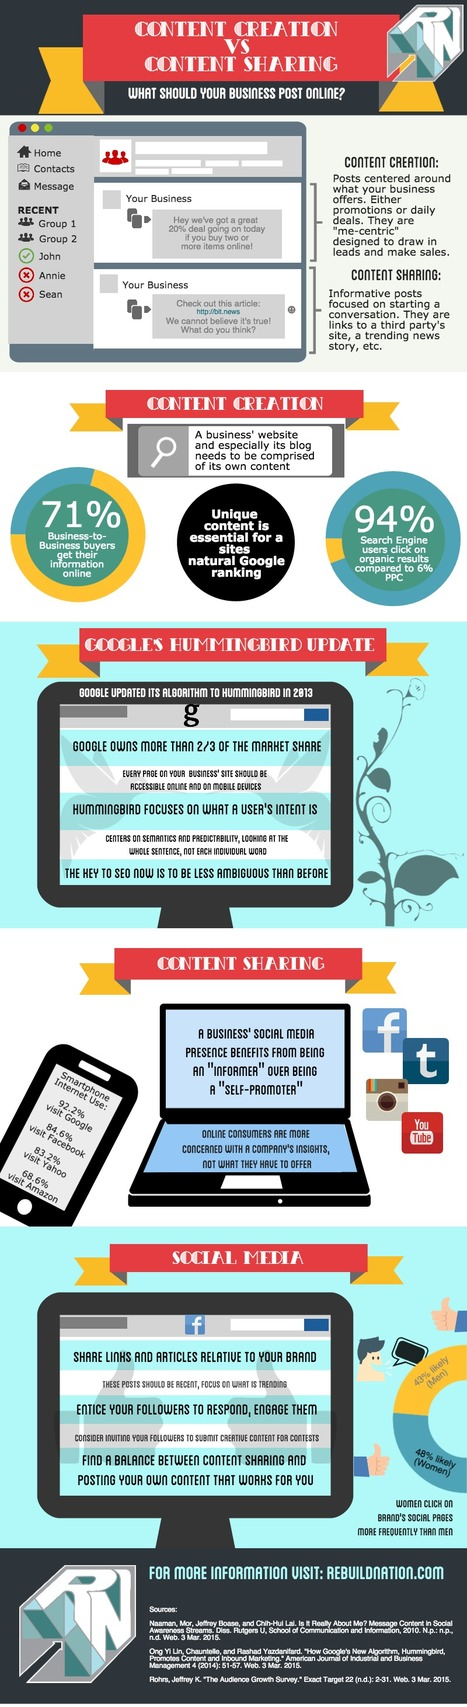 The Difference Between Content Sharing and Content Creation #Infographic | MarketingHits | Scoop.it